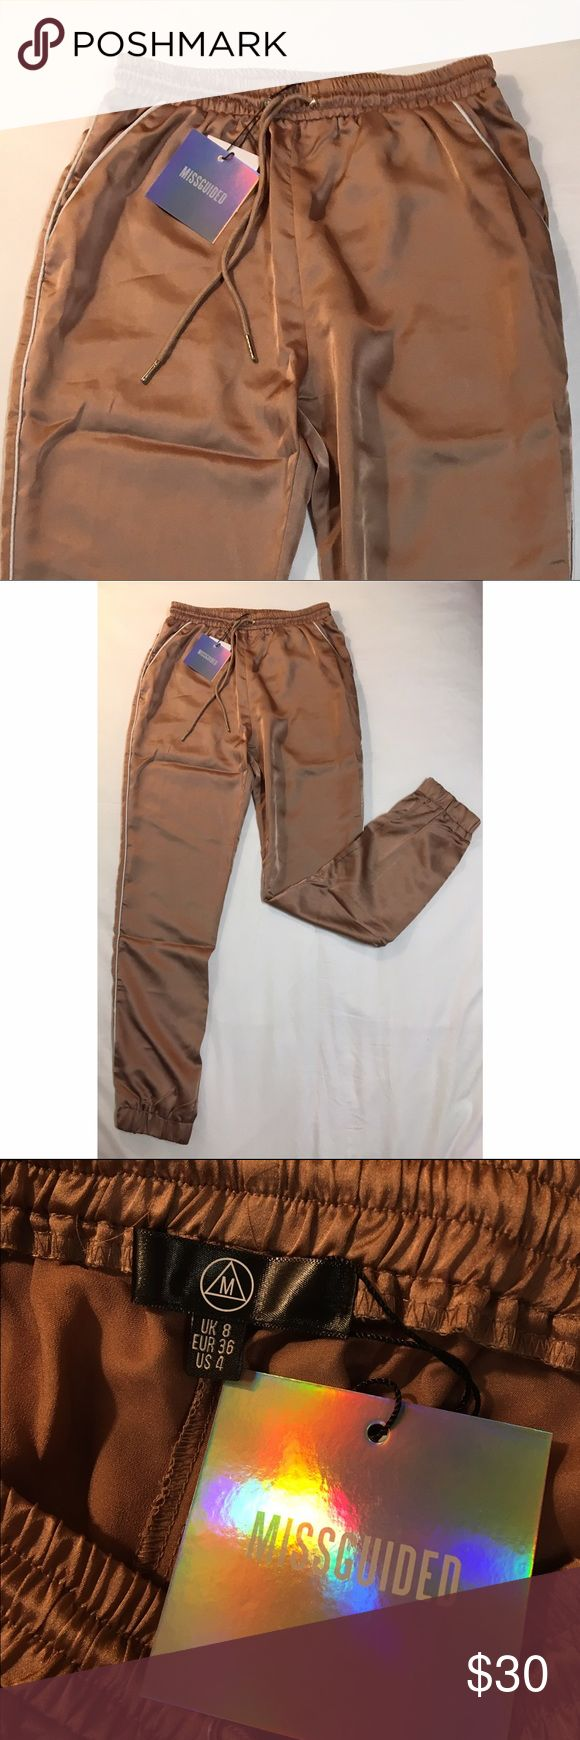 Misguided Satin Cuffed Joggers Very soft satin joggers with a white stripe down the side of the pants. These ROSE GOLD pants can be dressed down with sneakers or dressed up with heels. Misguided US Pants Track Pants & Joggers